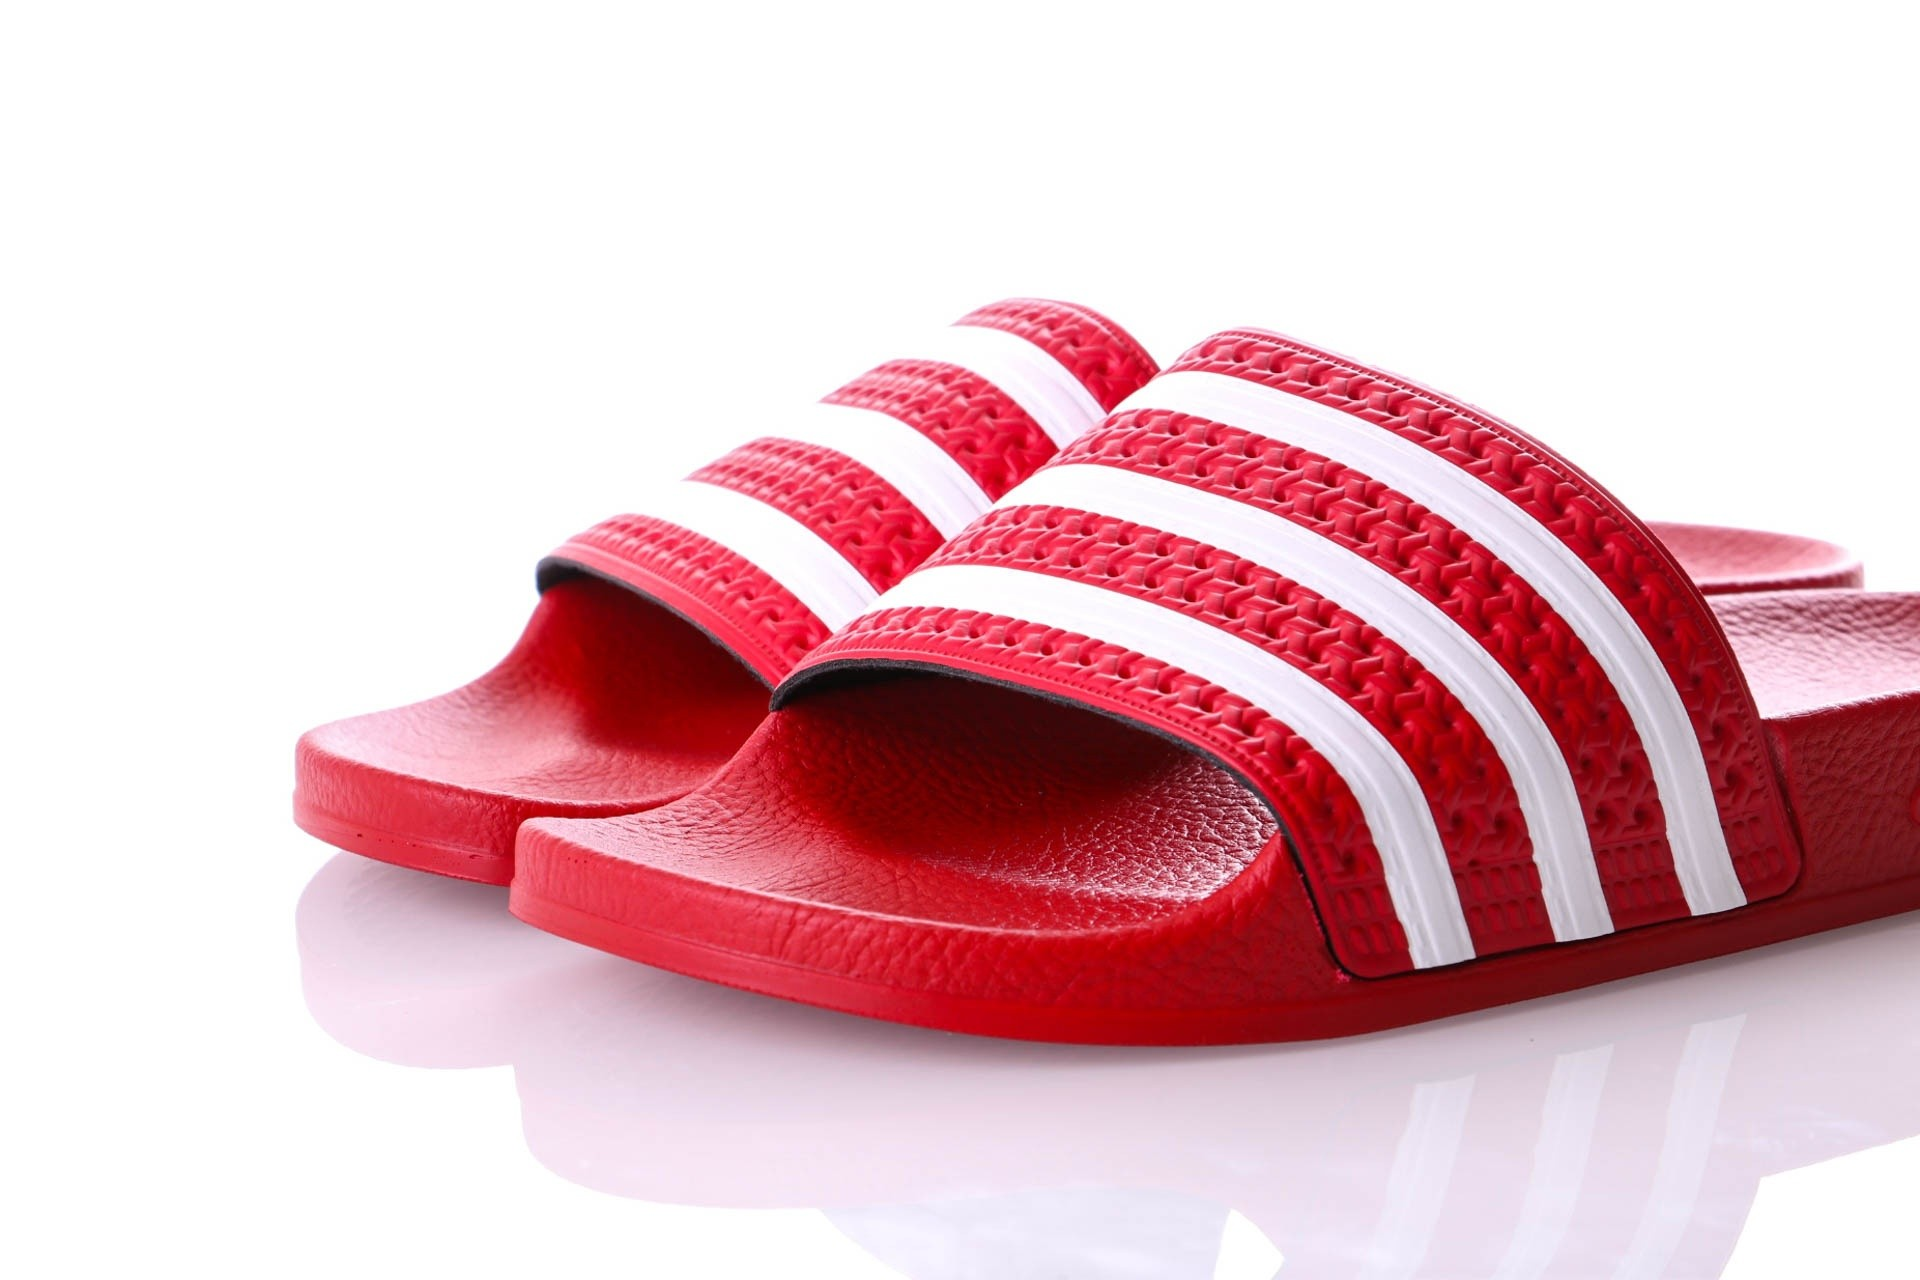 Afbeelding van Adidas Adilette Adicolor Var 288193 Slippers Light Scarlet/White/Light Scarlet